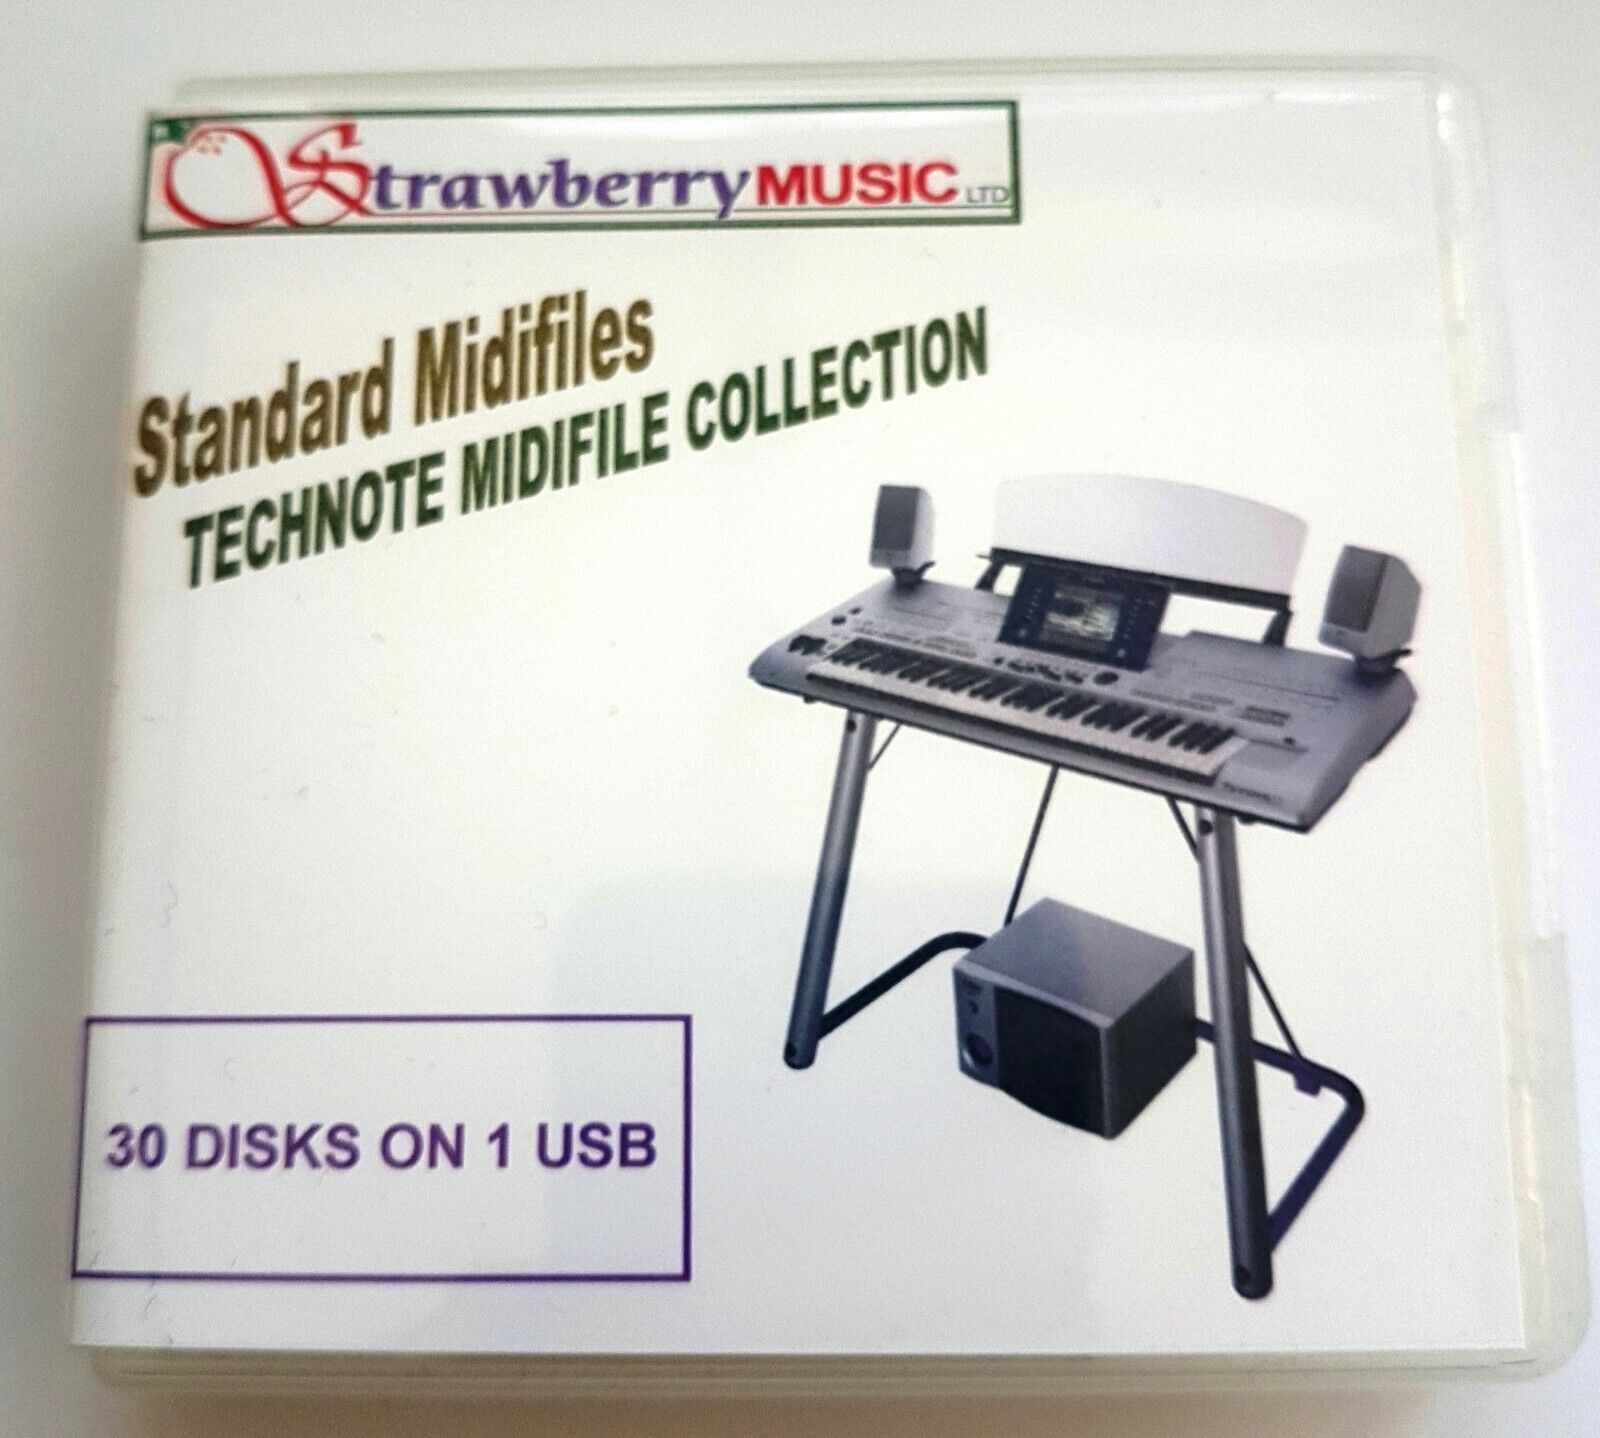 TECHNOTE midifile collection - 30 disk set on one USB. 300+ songs for EKL books